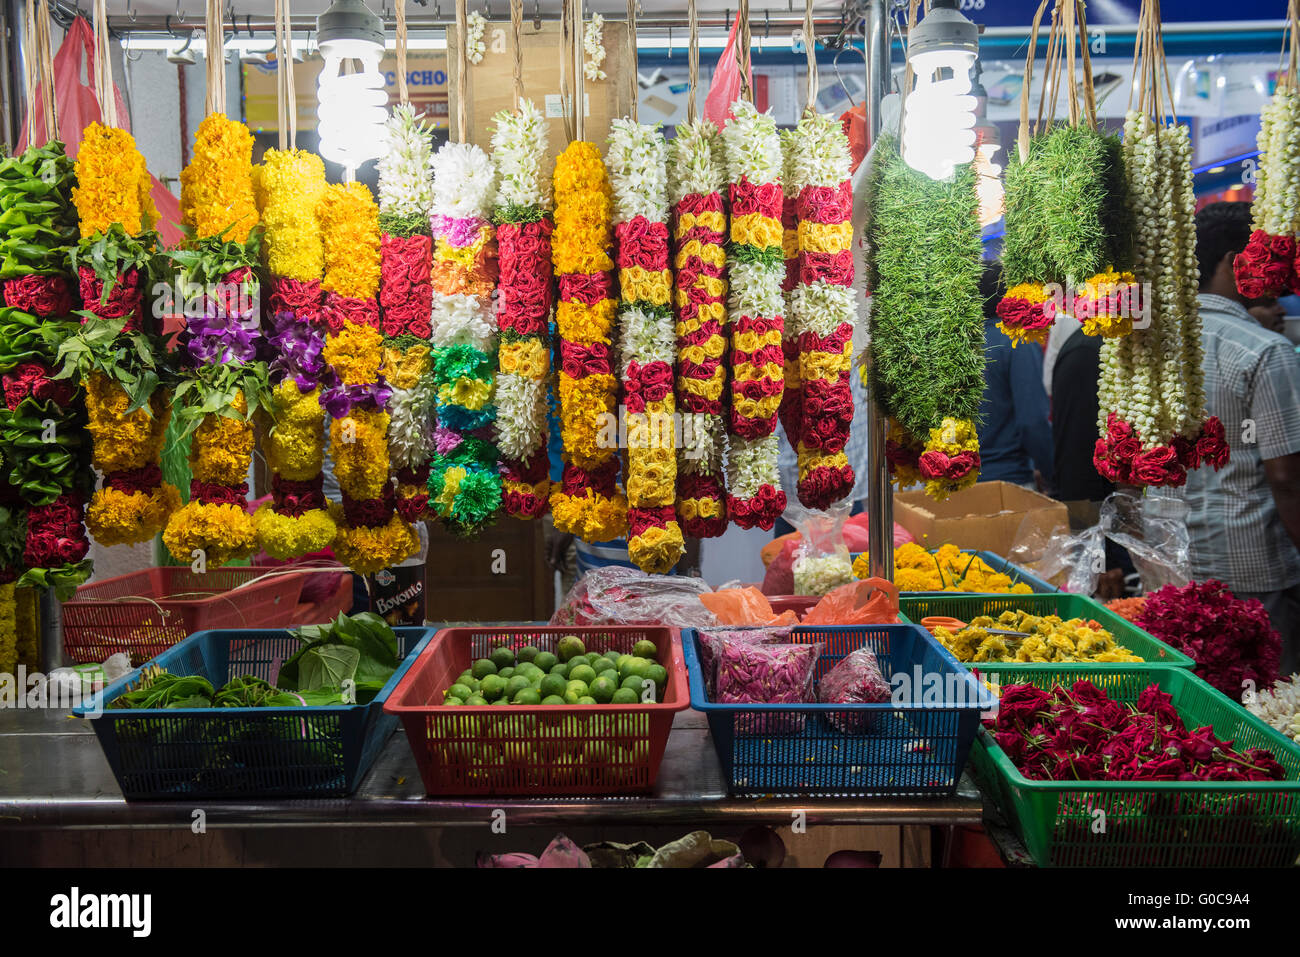 market stall in little india selling flower garlands used for worship stock photo royalty free. Black Bedroom Furniture Sets. Home Design Ideas